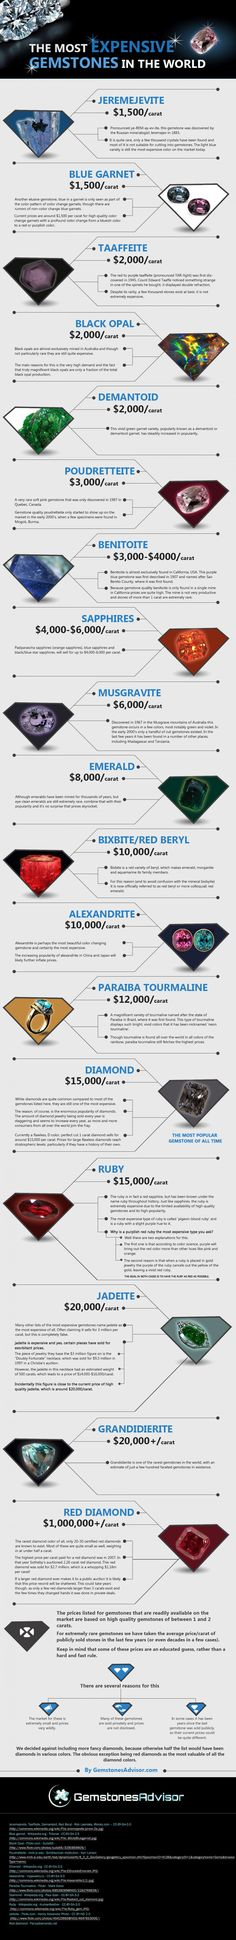 The most expensive gemstones in the world  Infographic